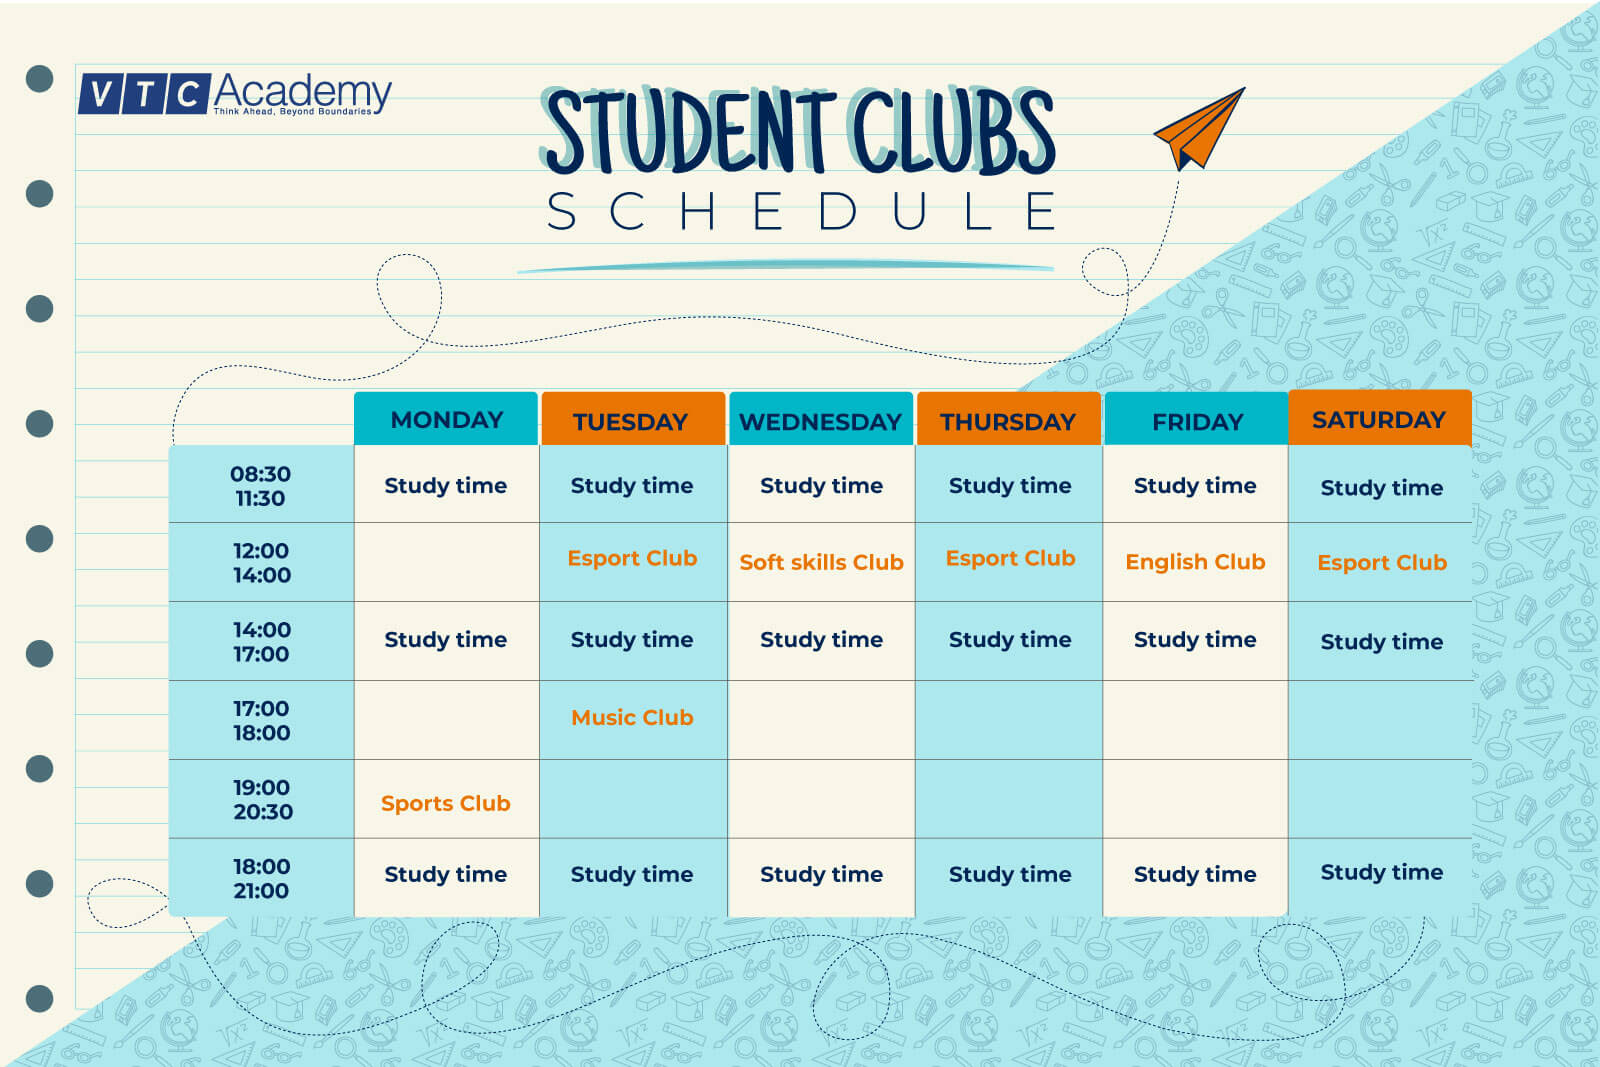 Schedule of student clubs in October 2020 at VTC Academy HCMC